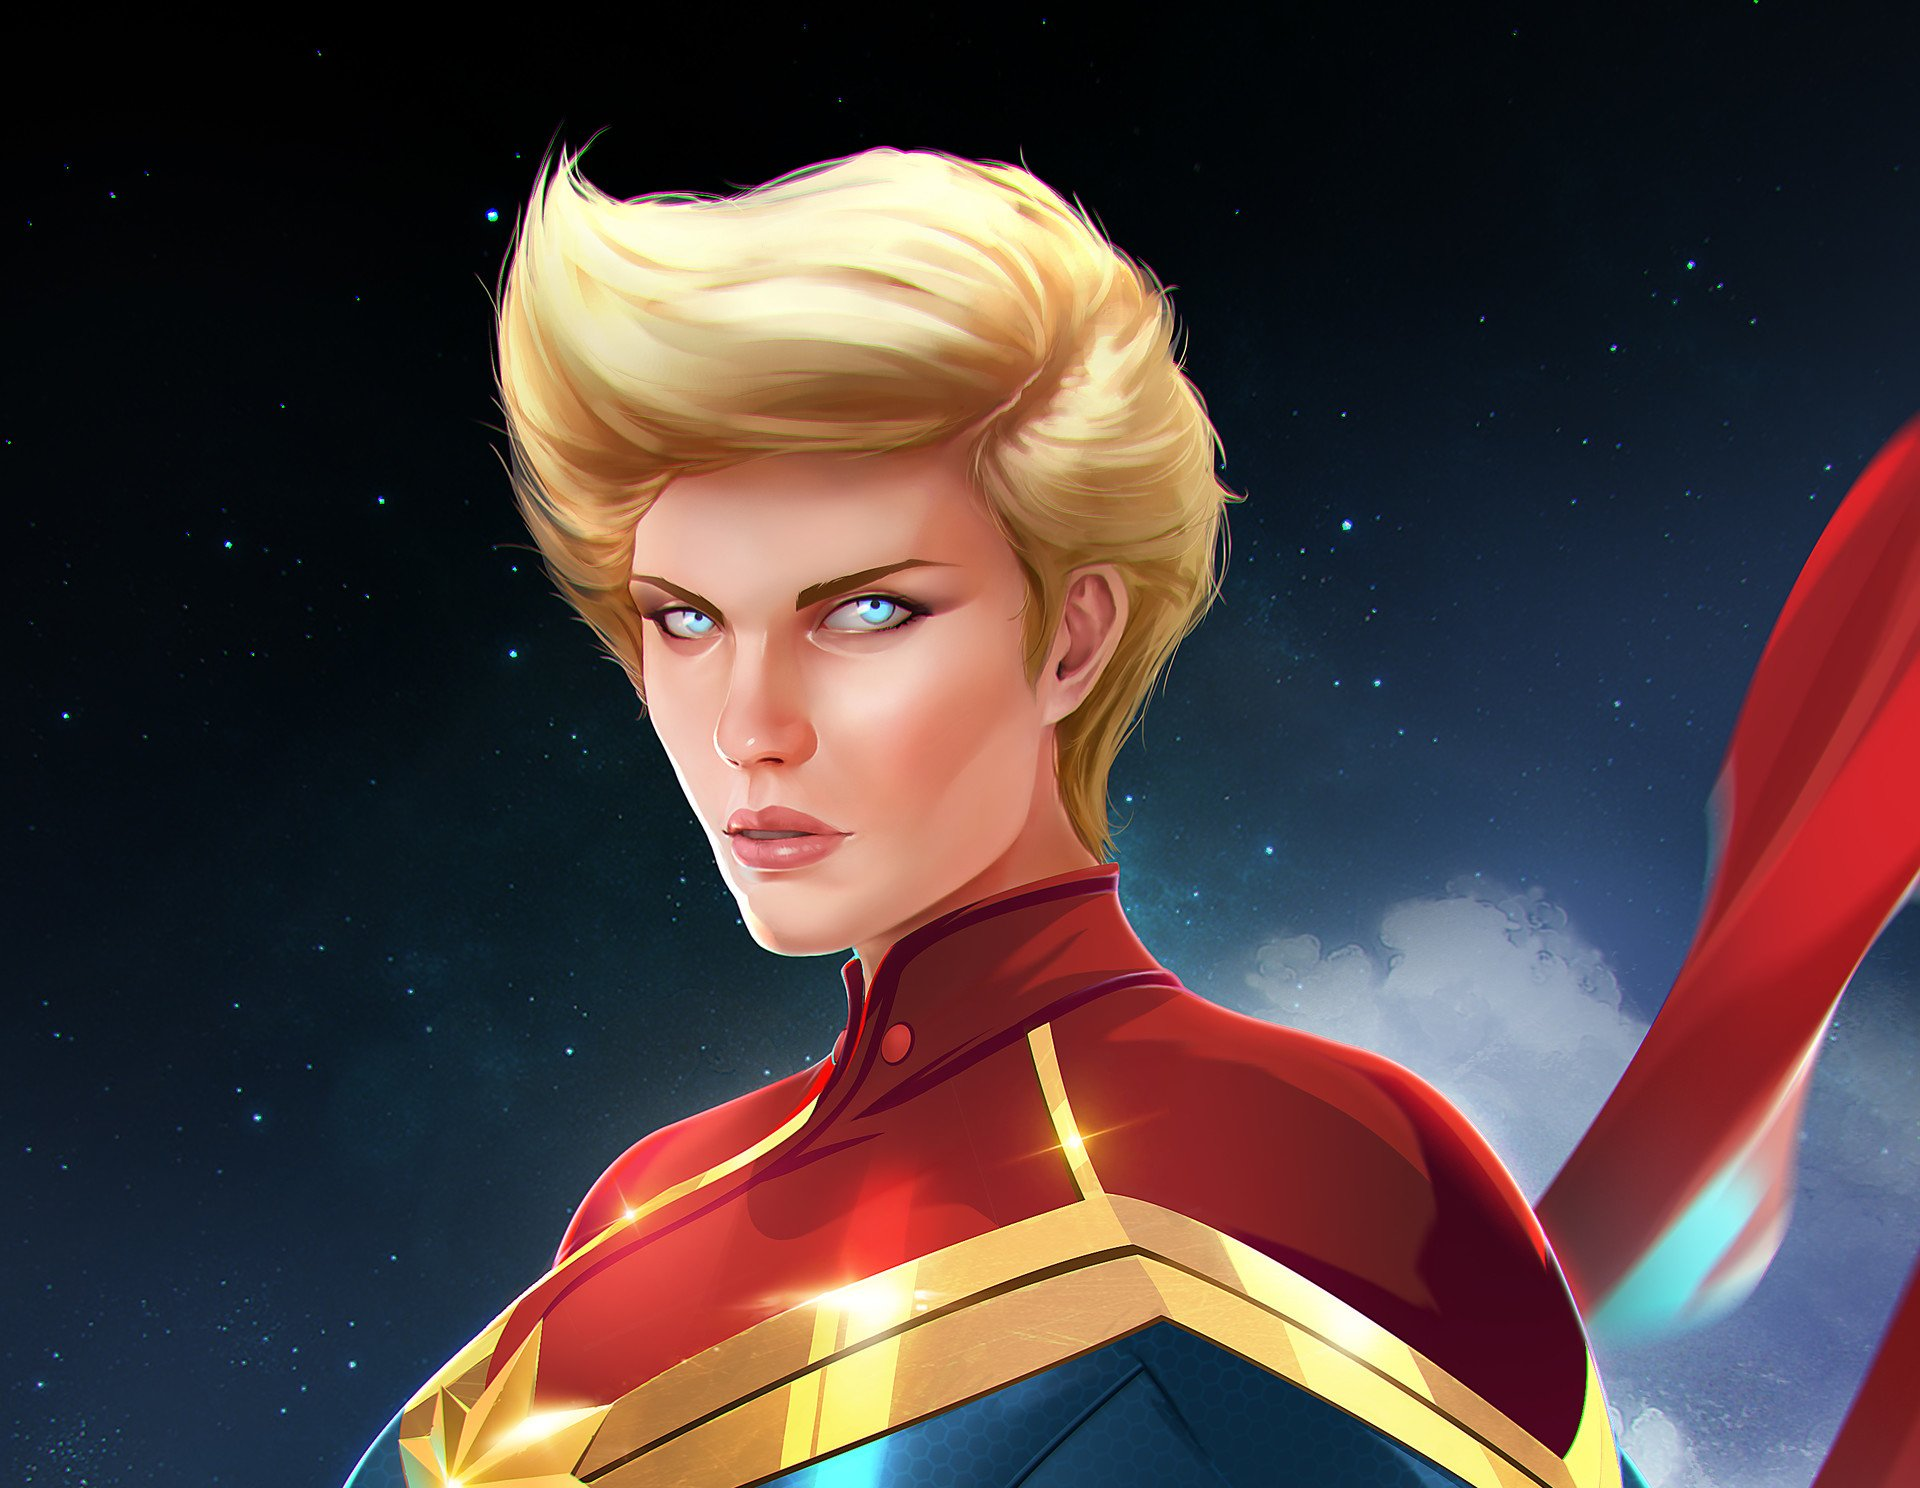 Captain Marvel Hd Wallpaper Background Image 1920x1488 Id 1061940 Wallpaper Abyss